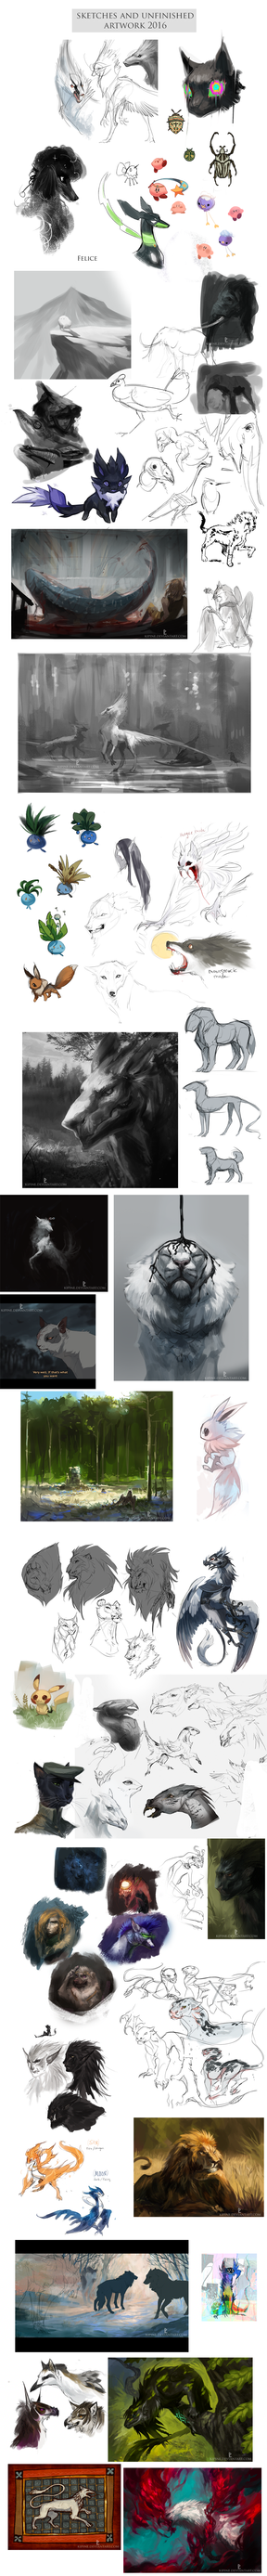 Sketchdump 2016 by Kipine